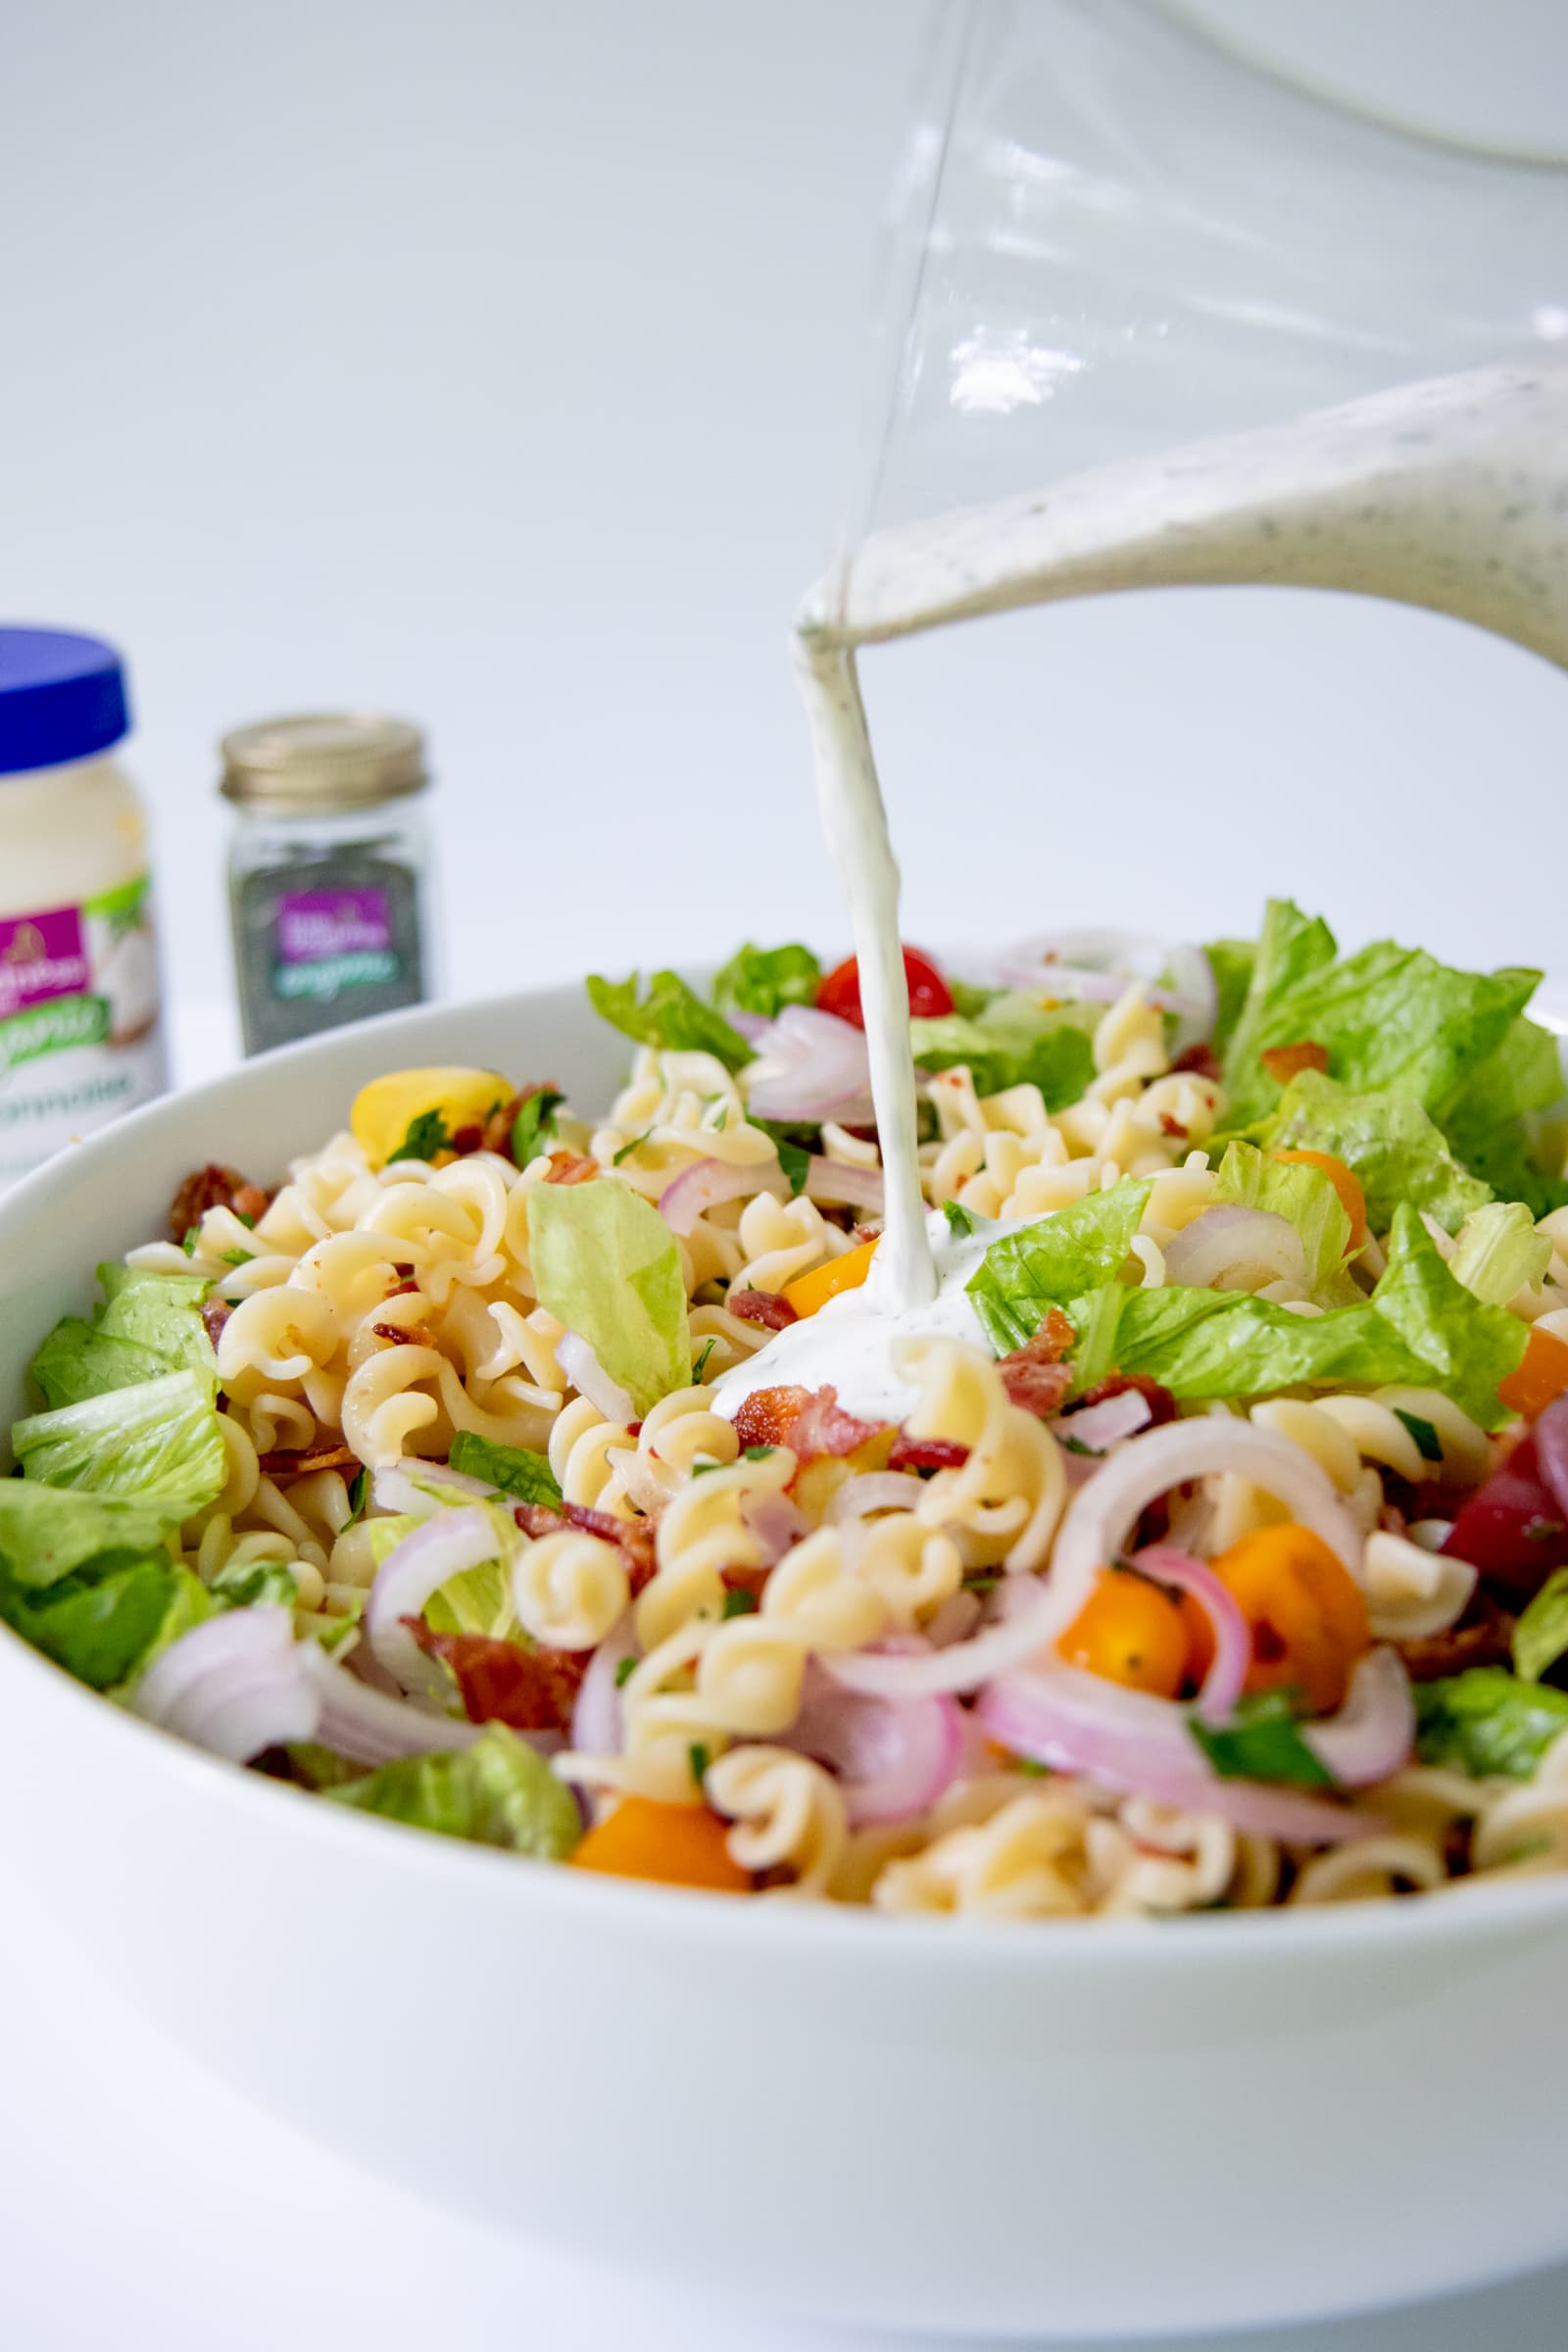 Homemade ranch dressing being poured over a pasta salad